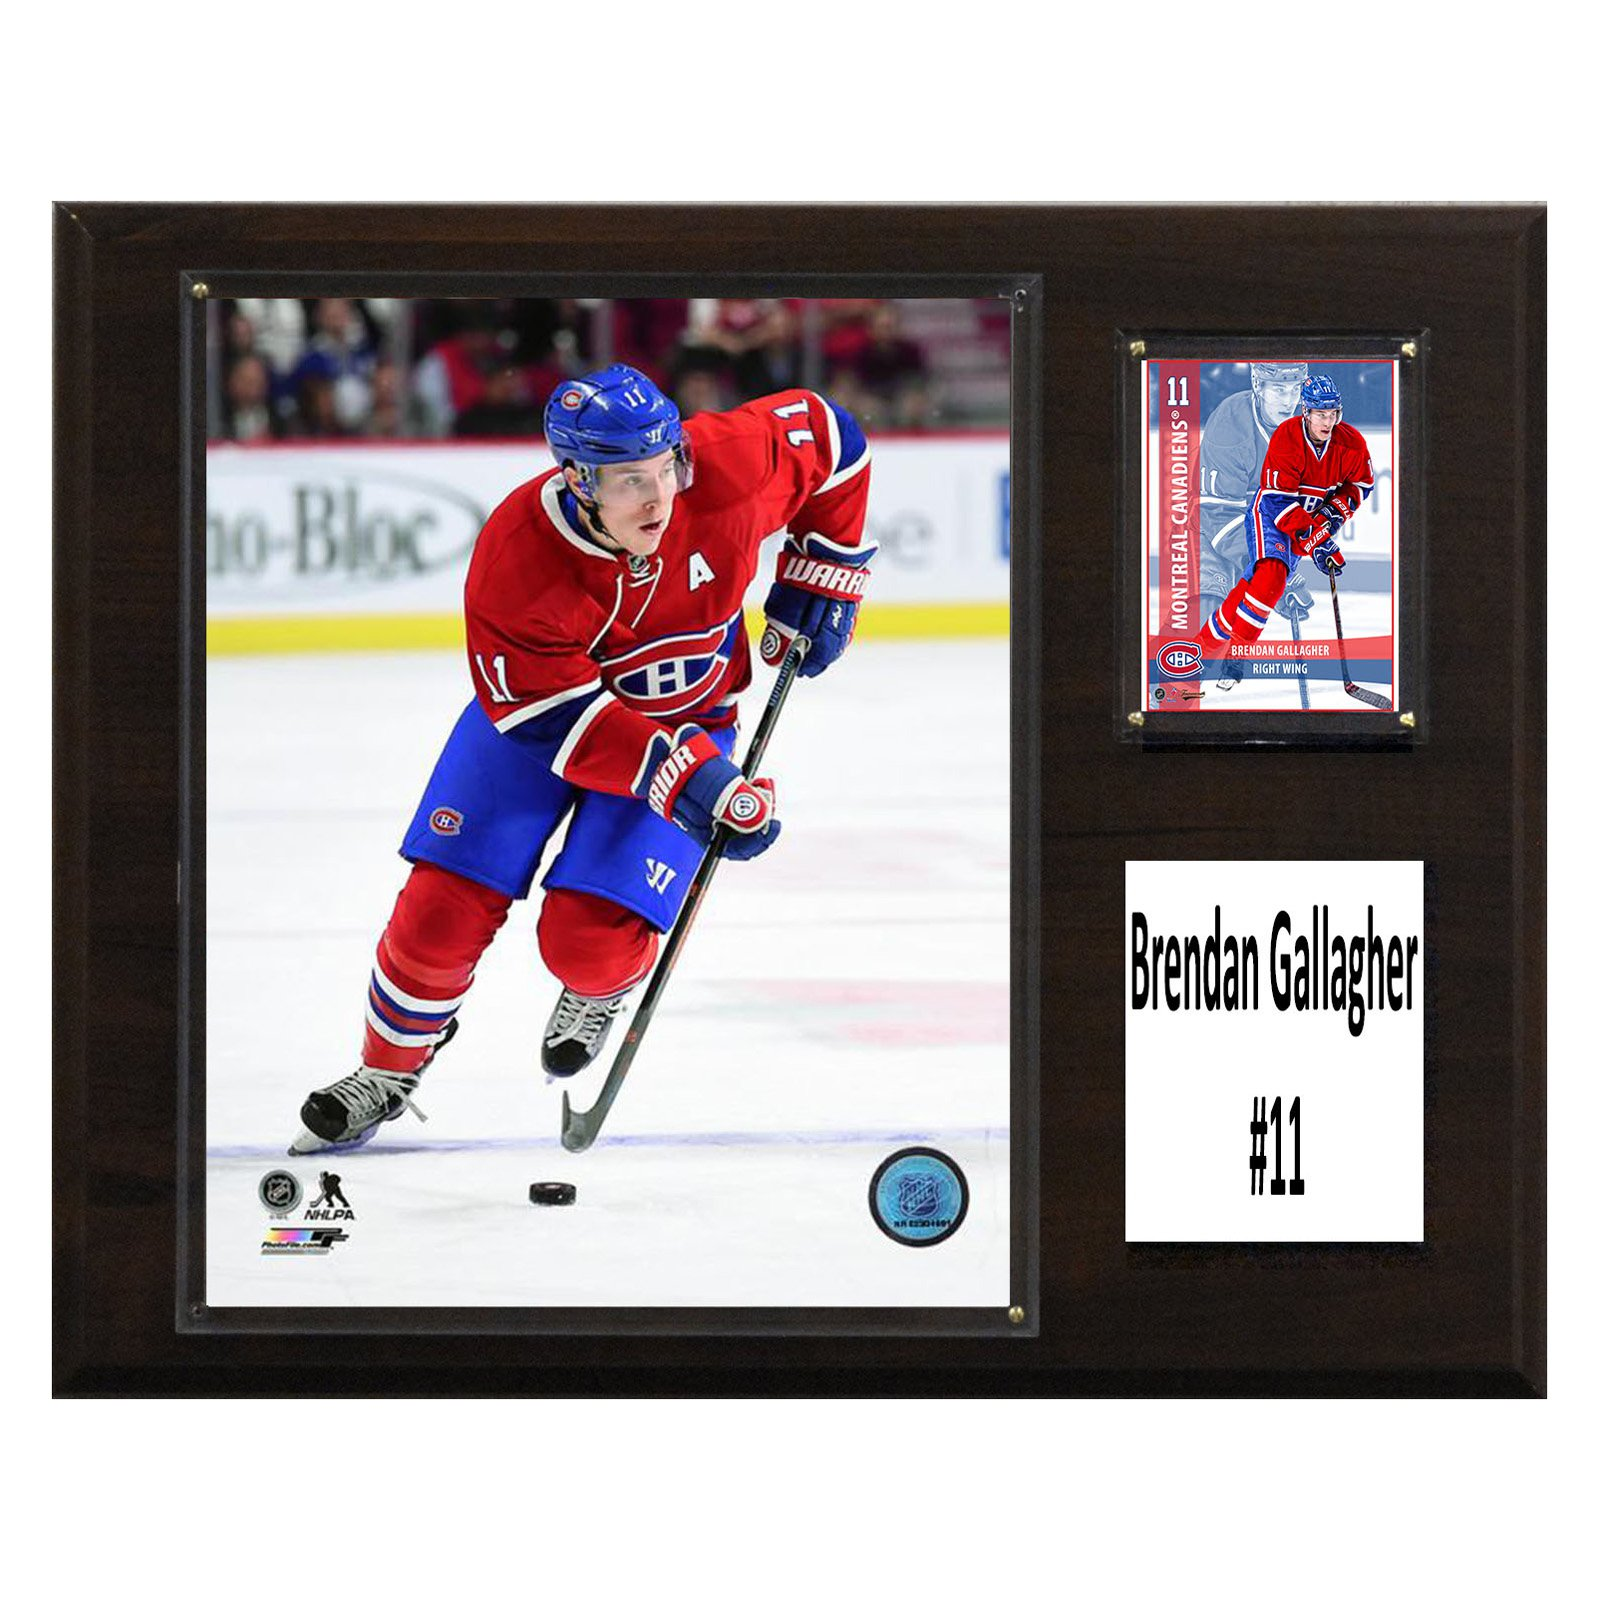 "C & I Collectables NHL 12"" x 15"" Brendan Gallagher Montreal Canadiens Player Plaque"